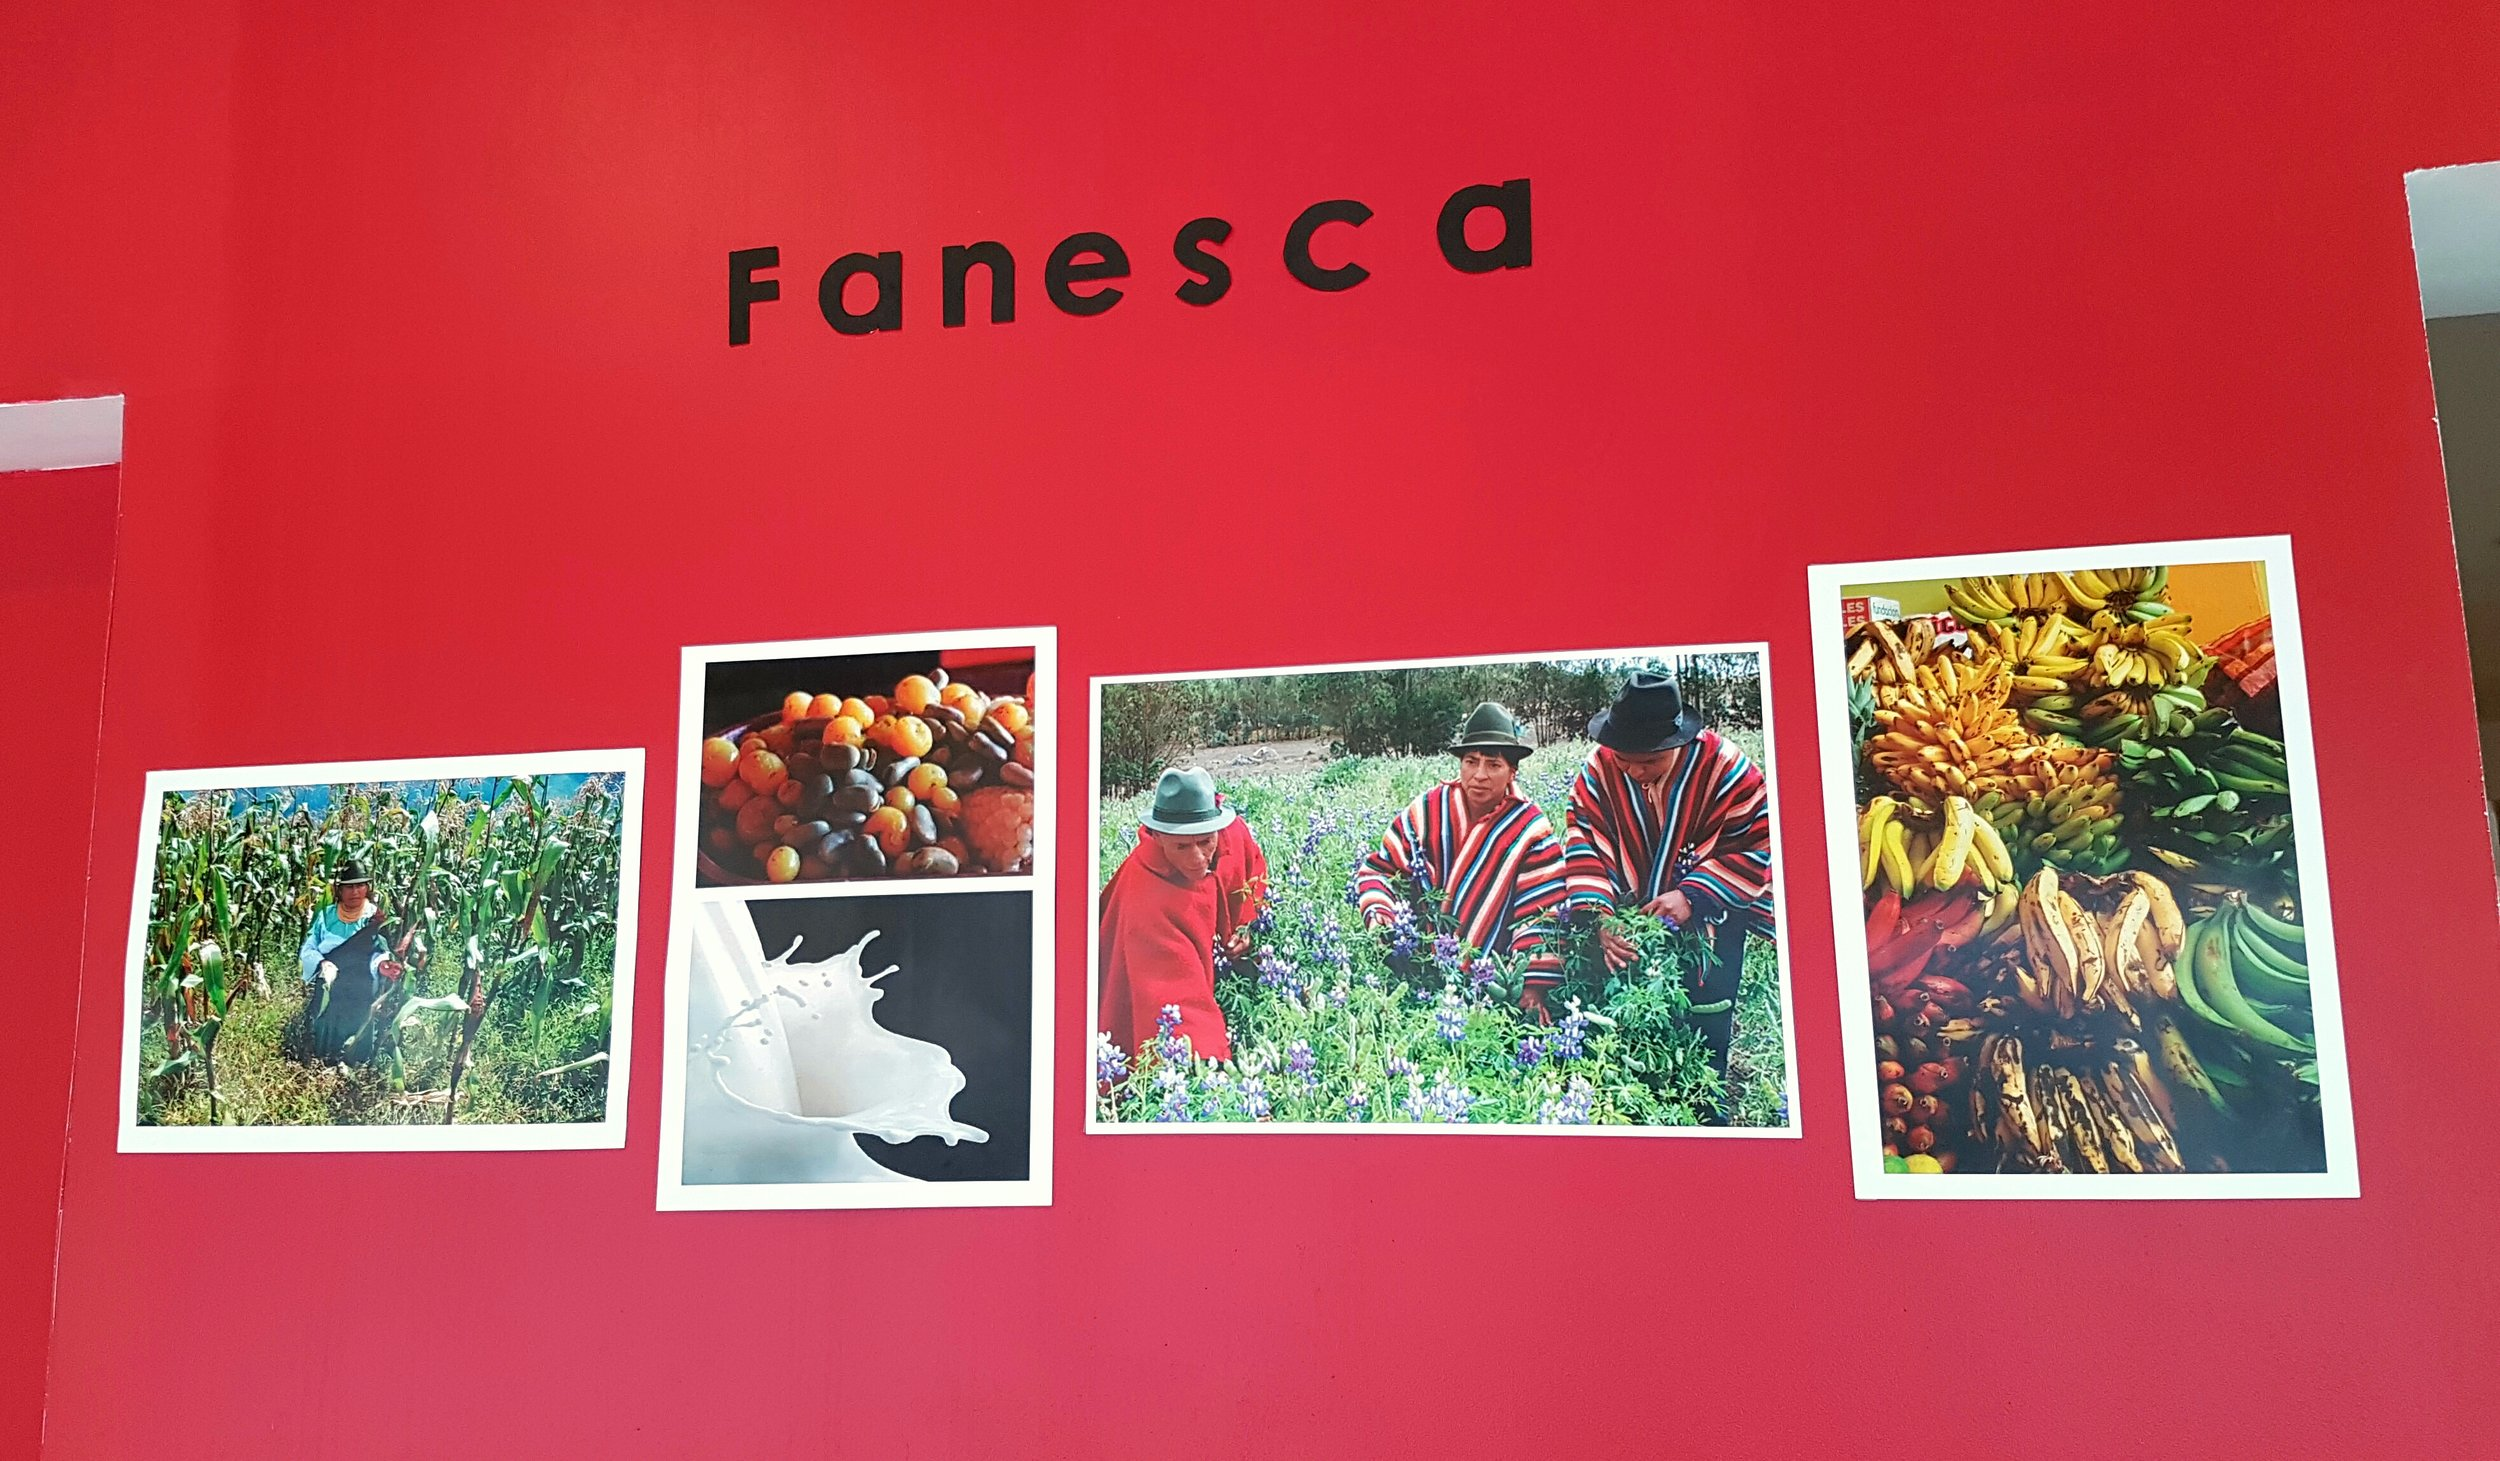 A photo display about Fanesca inside Achiote restaurant.